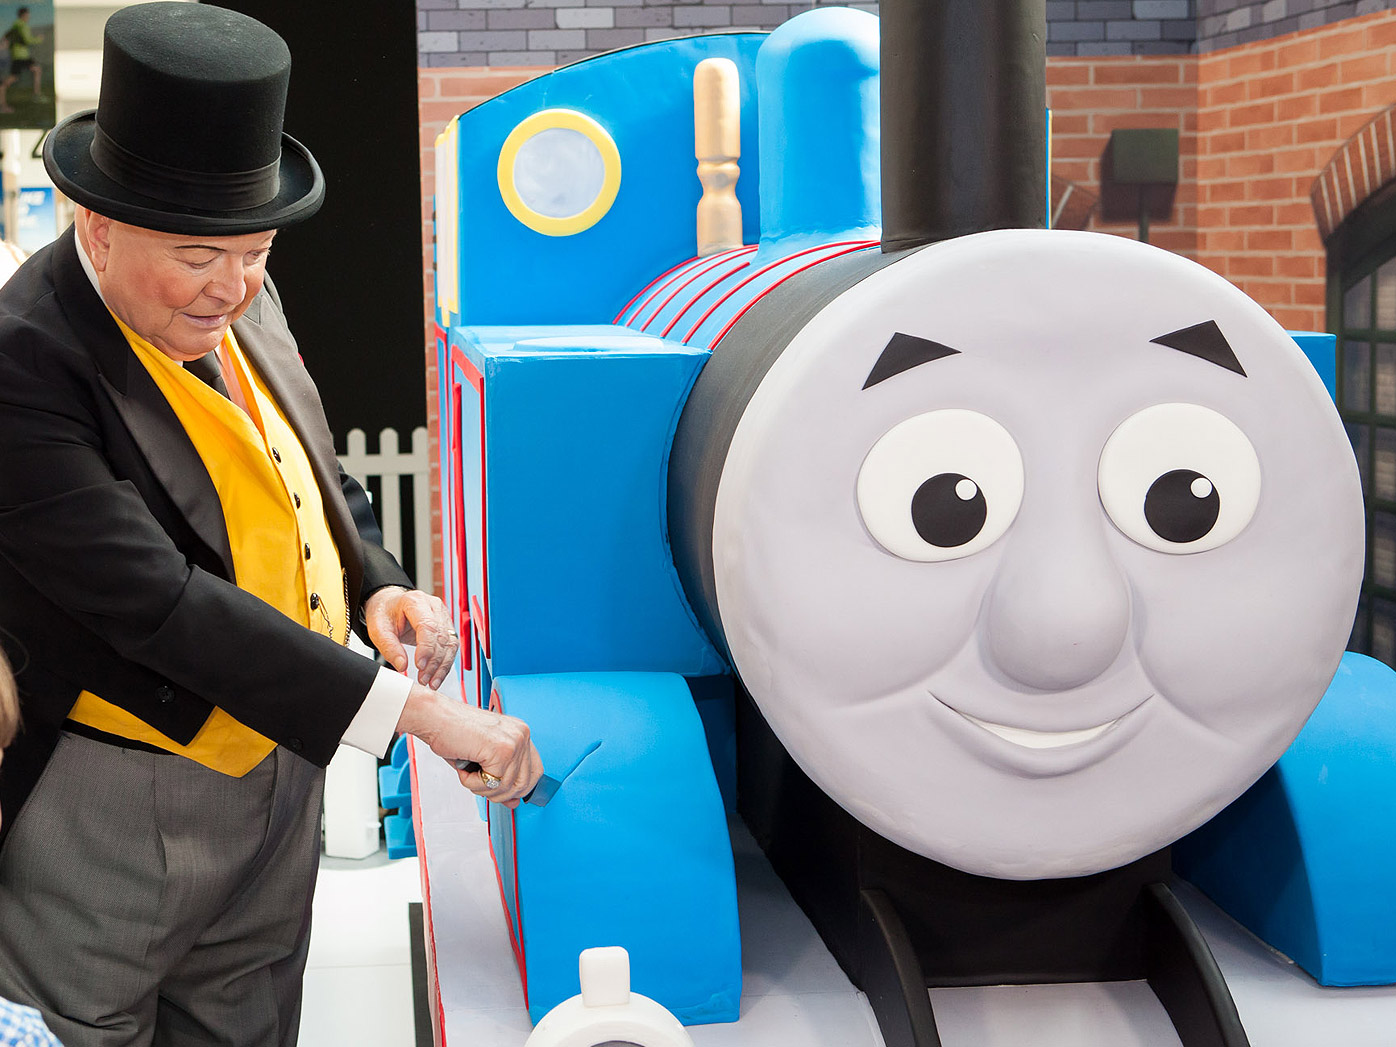 Thomas celebrates birthday with one-tonne cake